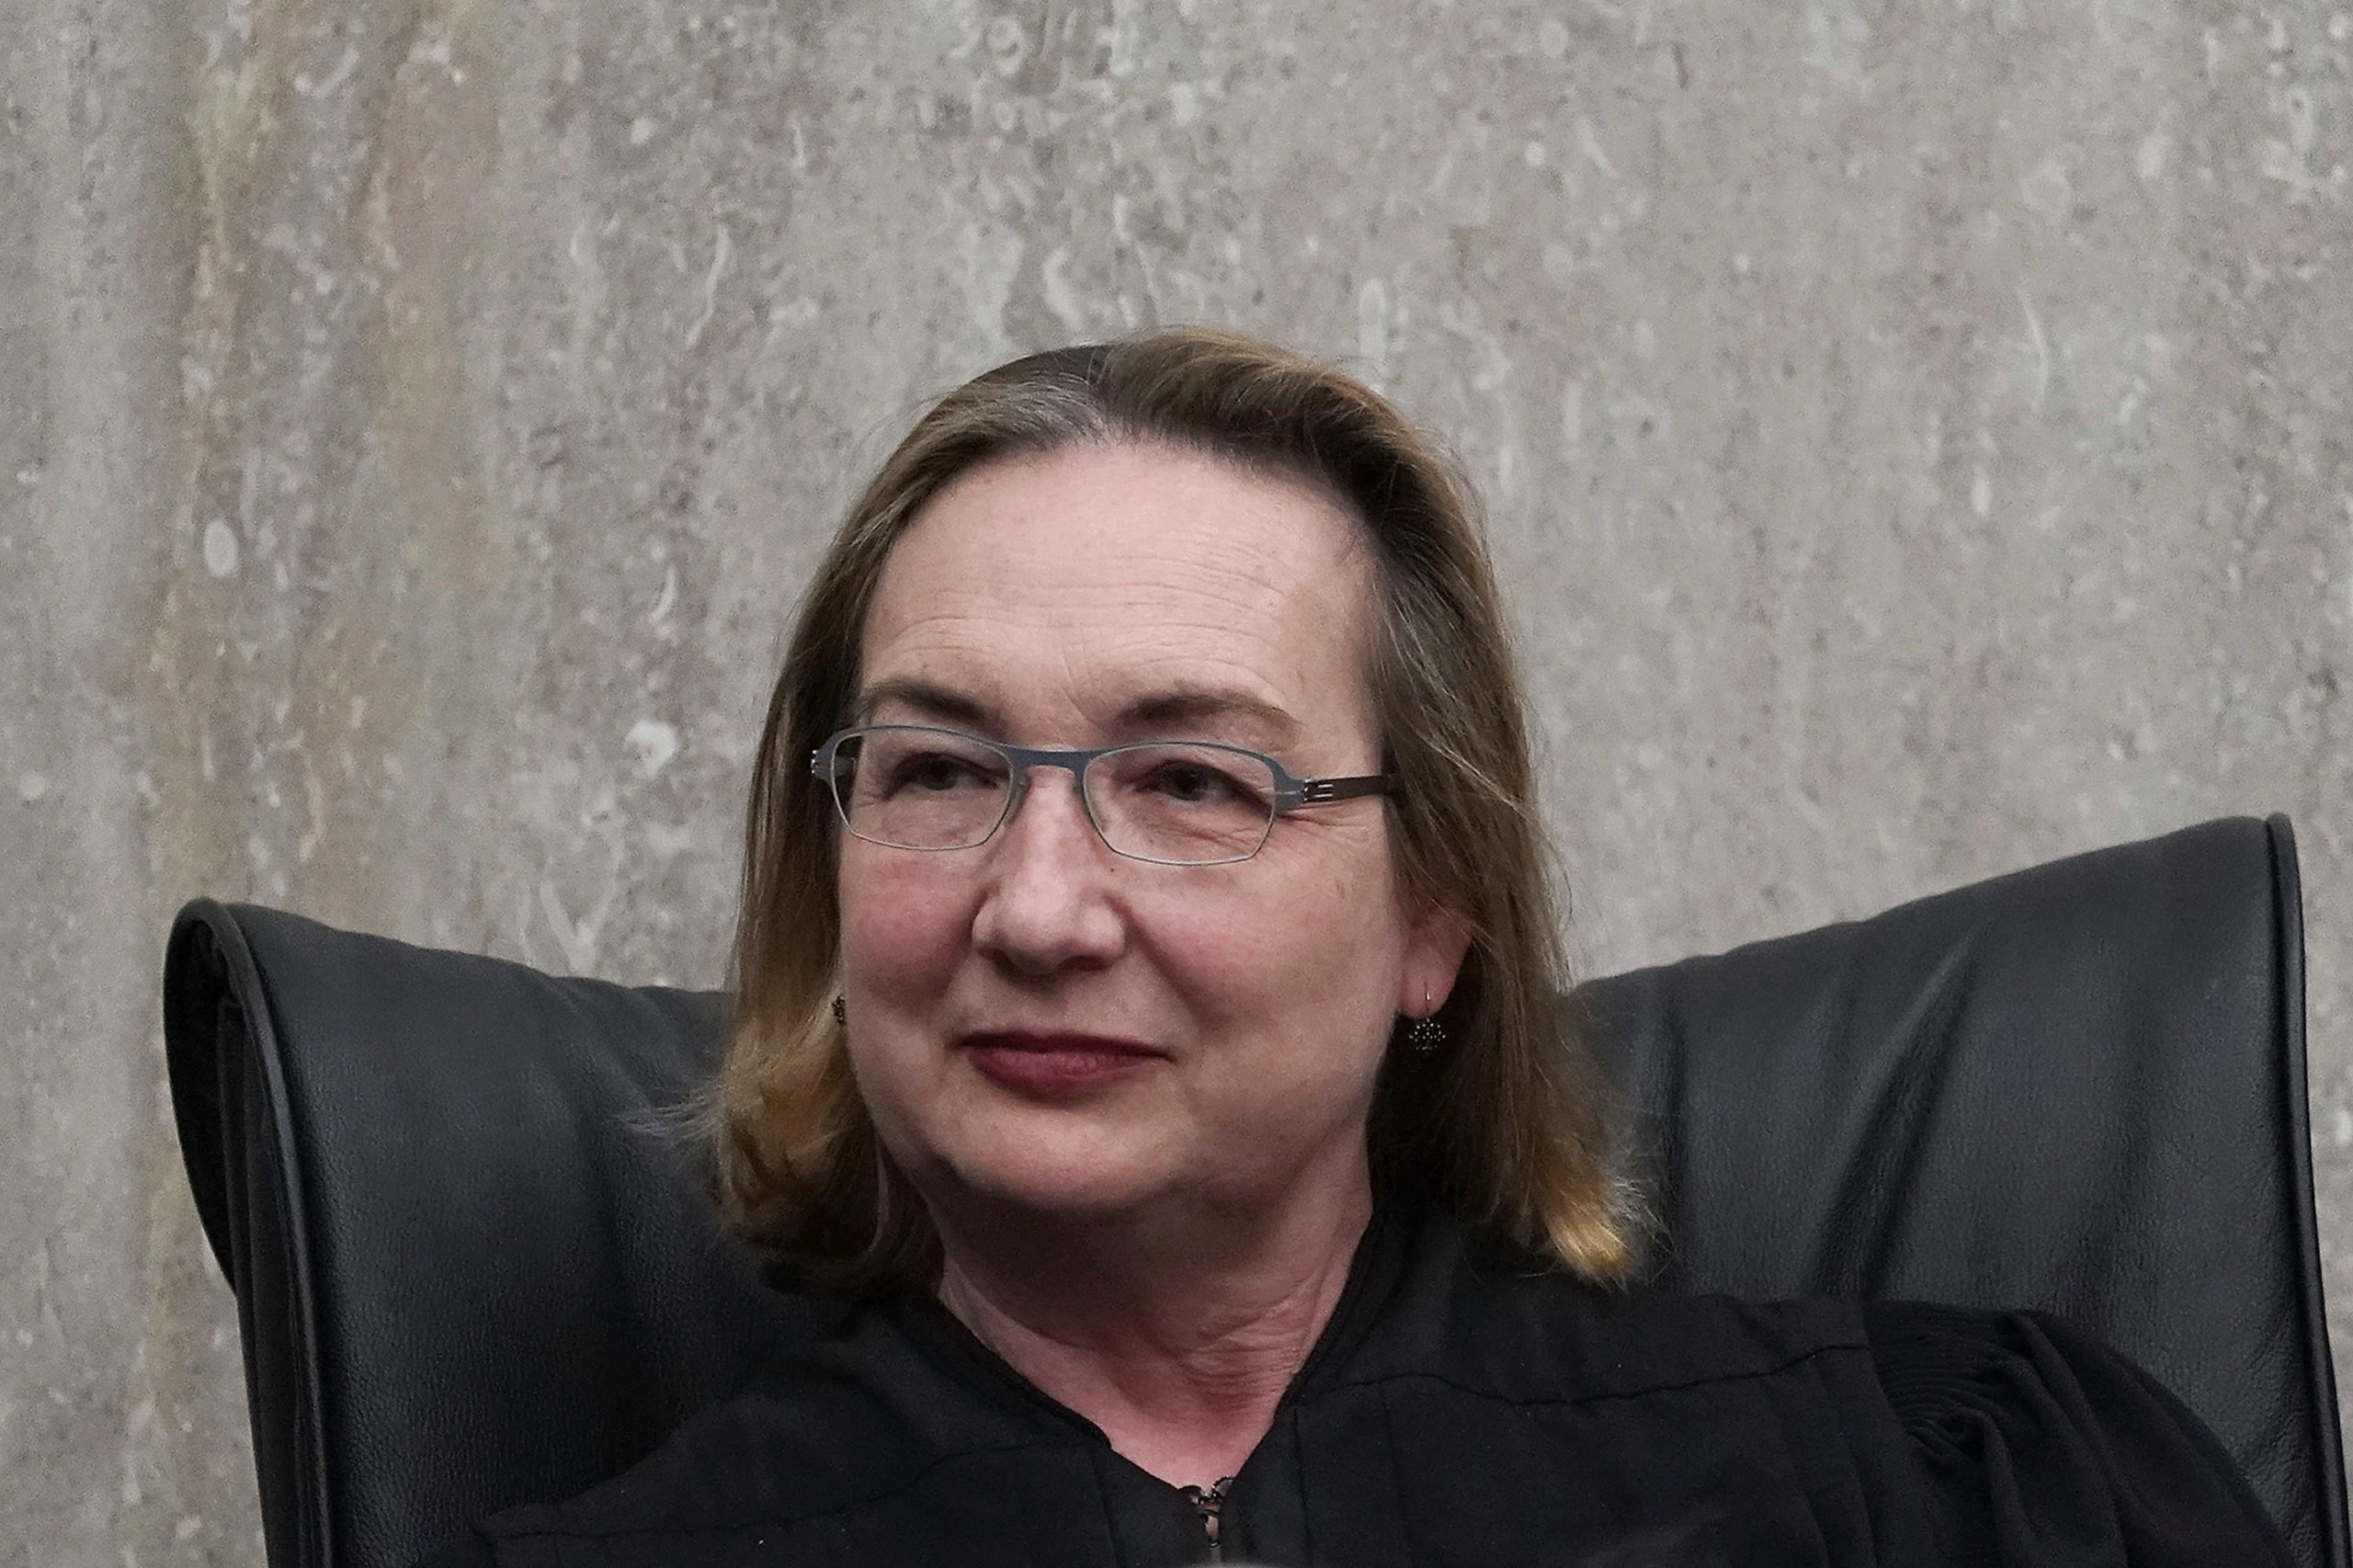 U.S. District Judge for the District of Columbia Beryl Howell listens during the investiture ceremony for for another judge in 2018. (Alex Wong/Getty Images)